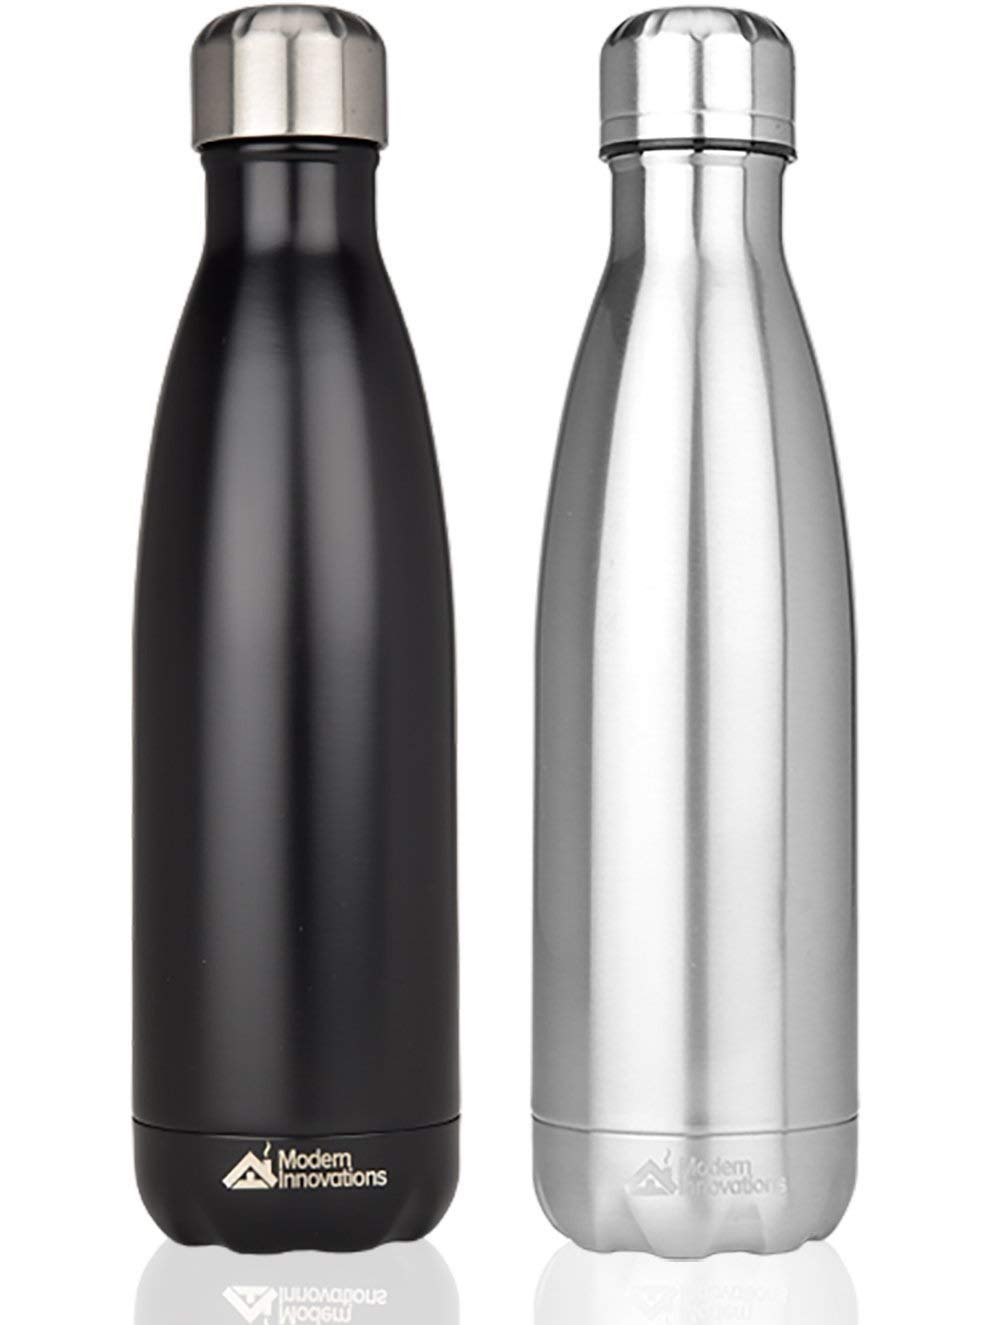 Modern Innovations 17oz Double Wall Vacuum Insulated Stainless Steel Water Bottles Leak Proof Keeps Drinks Hot and Cold for Outdoor Sports Camping Hiking Cycling,Black & Silver,2-Pack by Modern Innovations